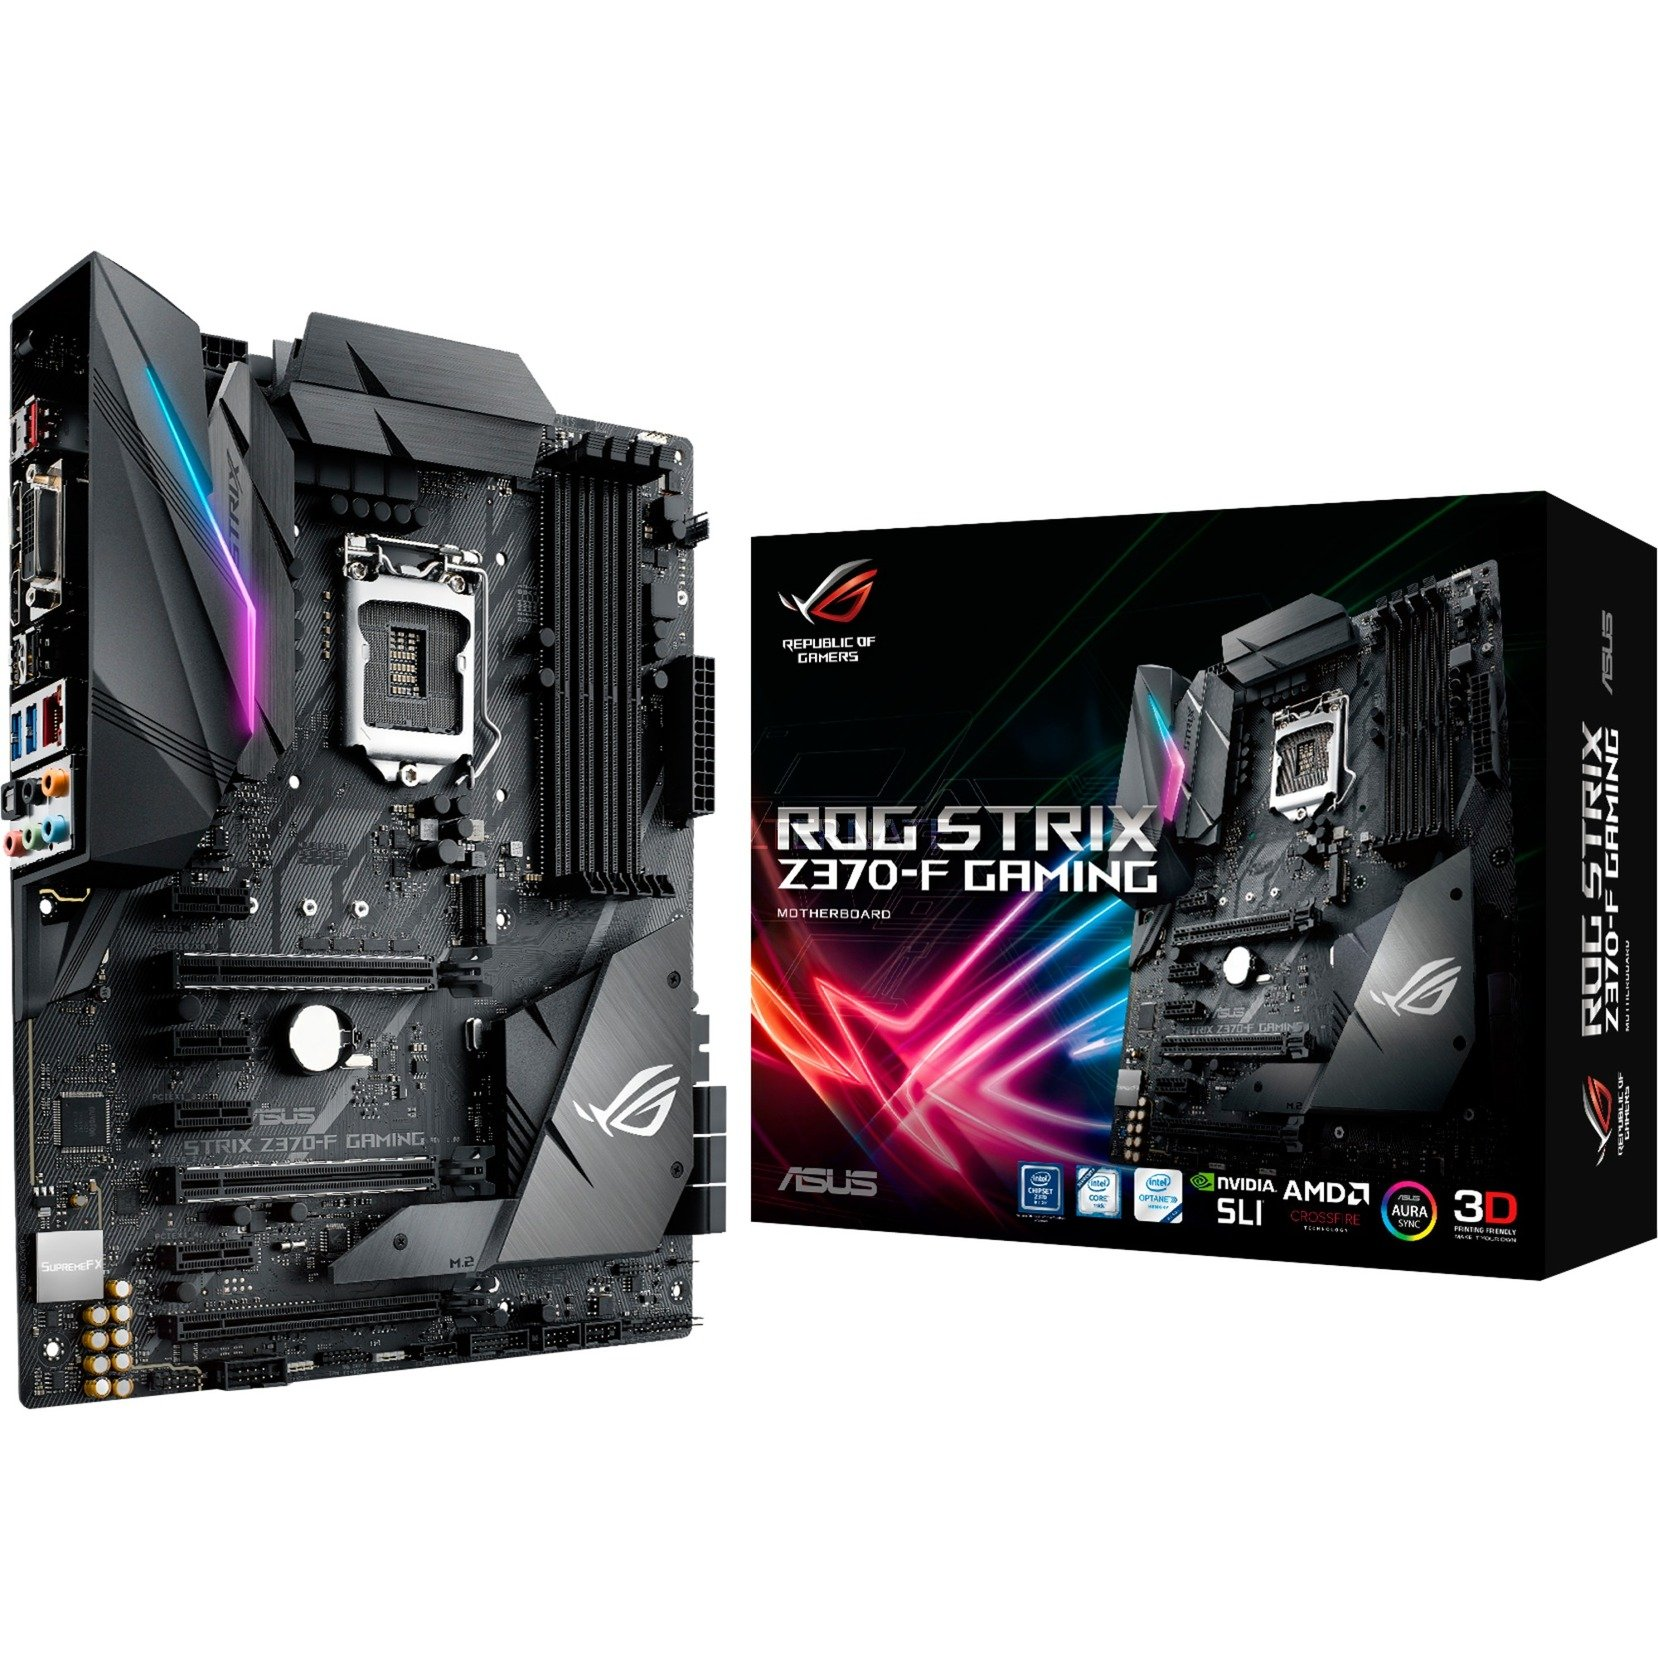 ROG STRIX Z370-F GAMING, Mainboard